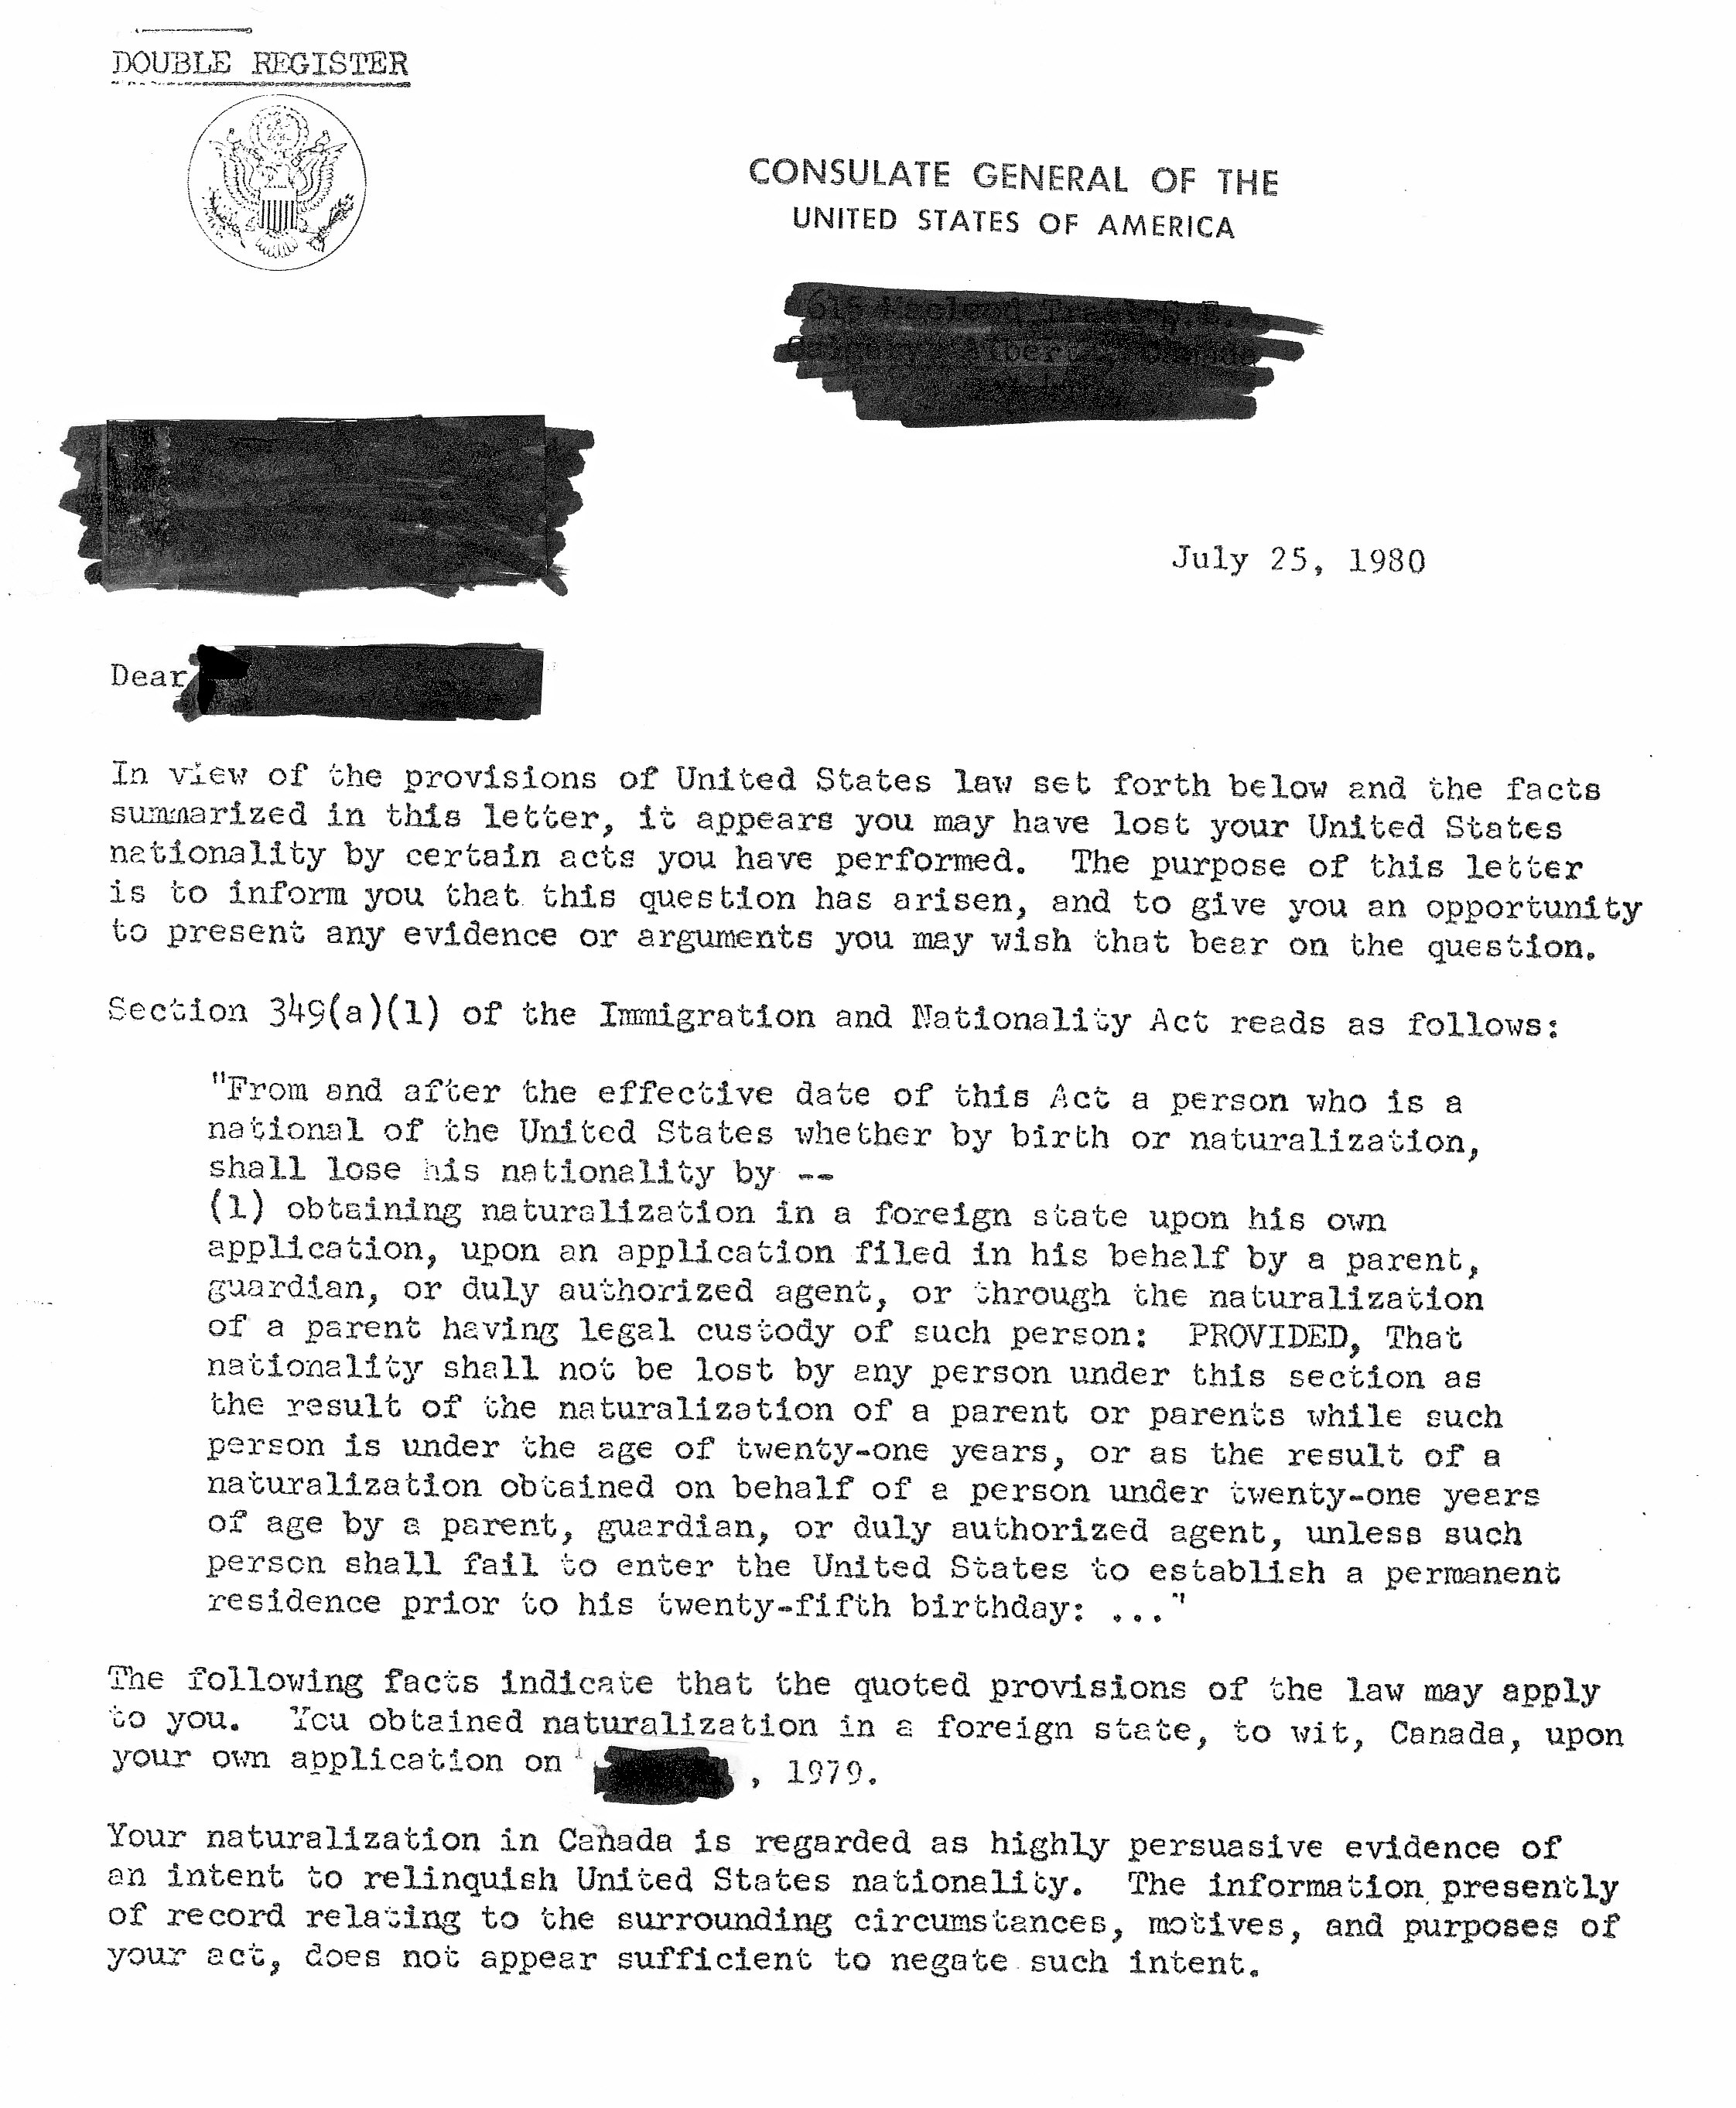 recommendation letter samples file letter from united states consulate general to 2244